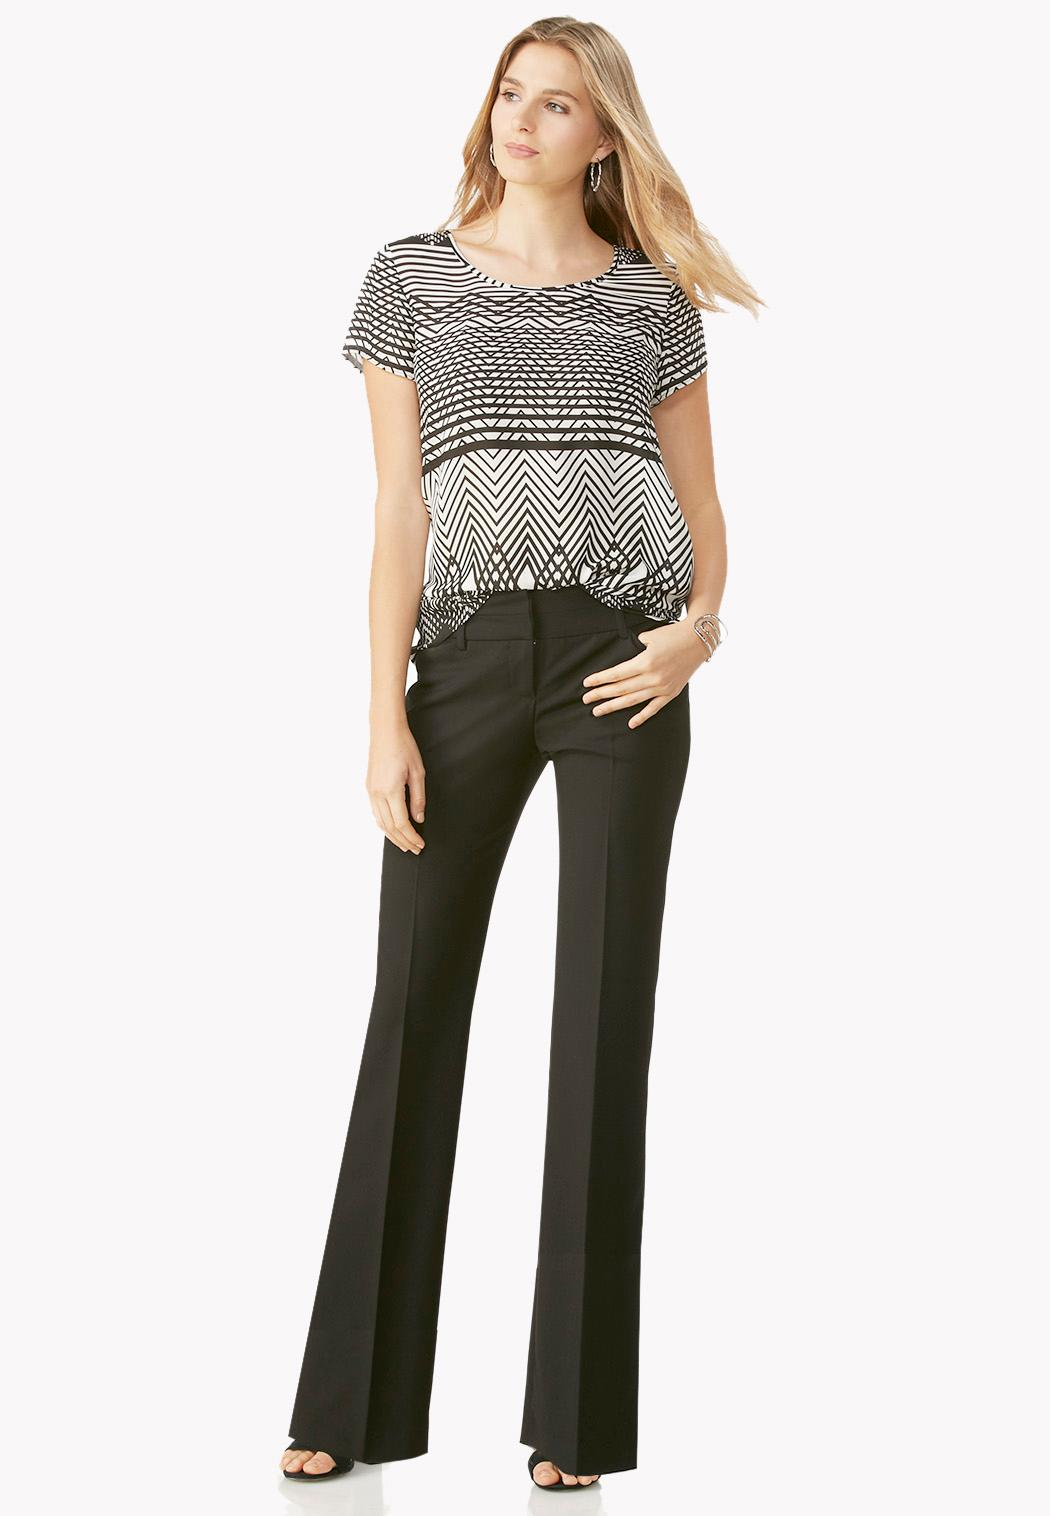 Petite Contemporary Fit Essential Trousers (Item #37638715)